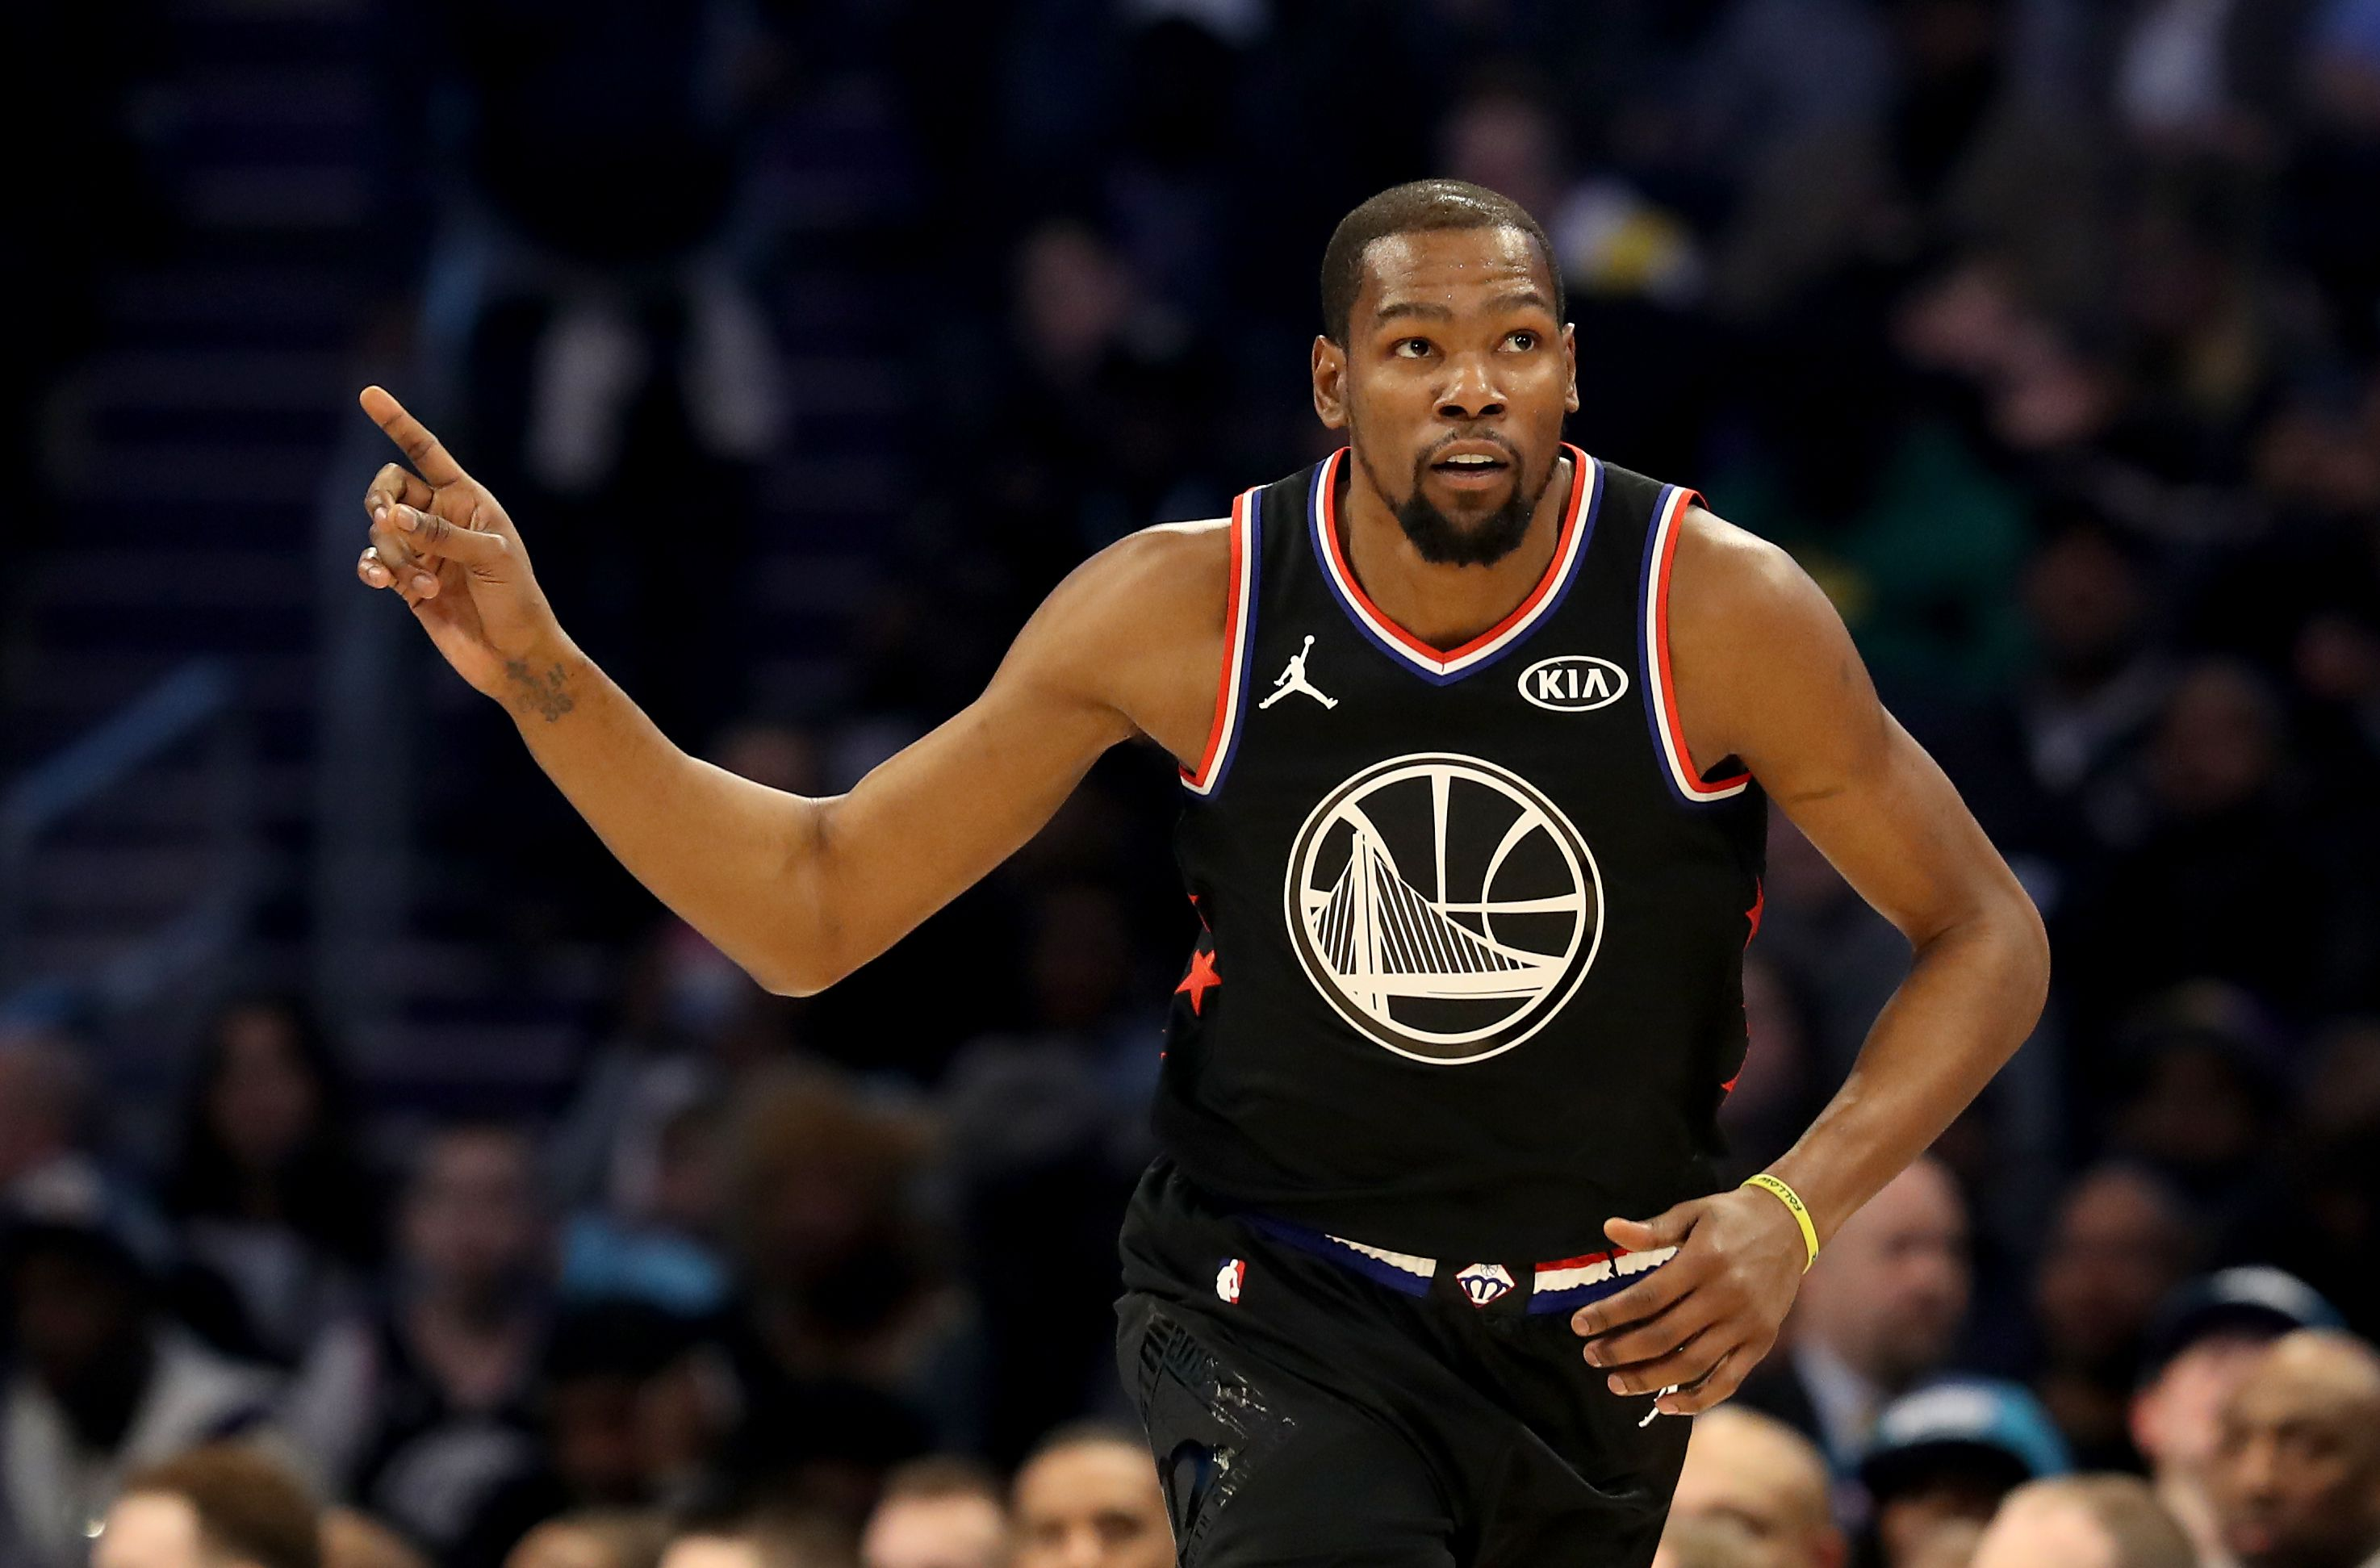 NBA Kevin Durant Free Agent NBA Kevin Durant Free Agent Knicks Brooklyn Nets Golden State Warriors